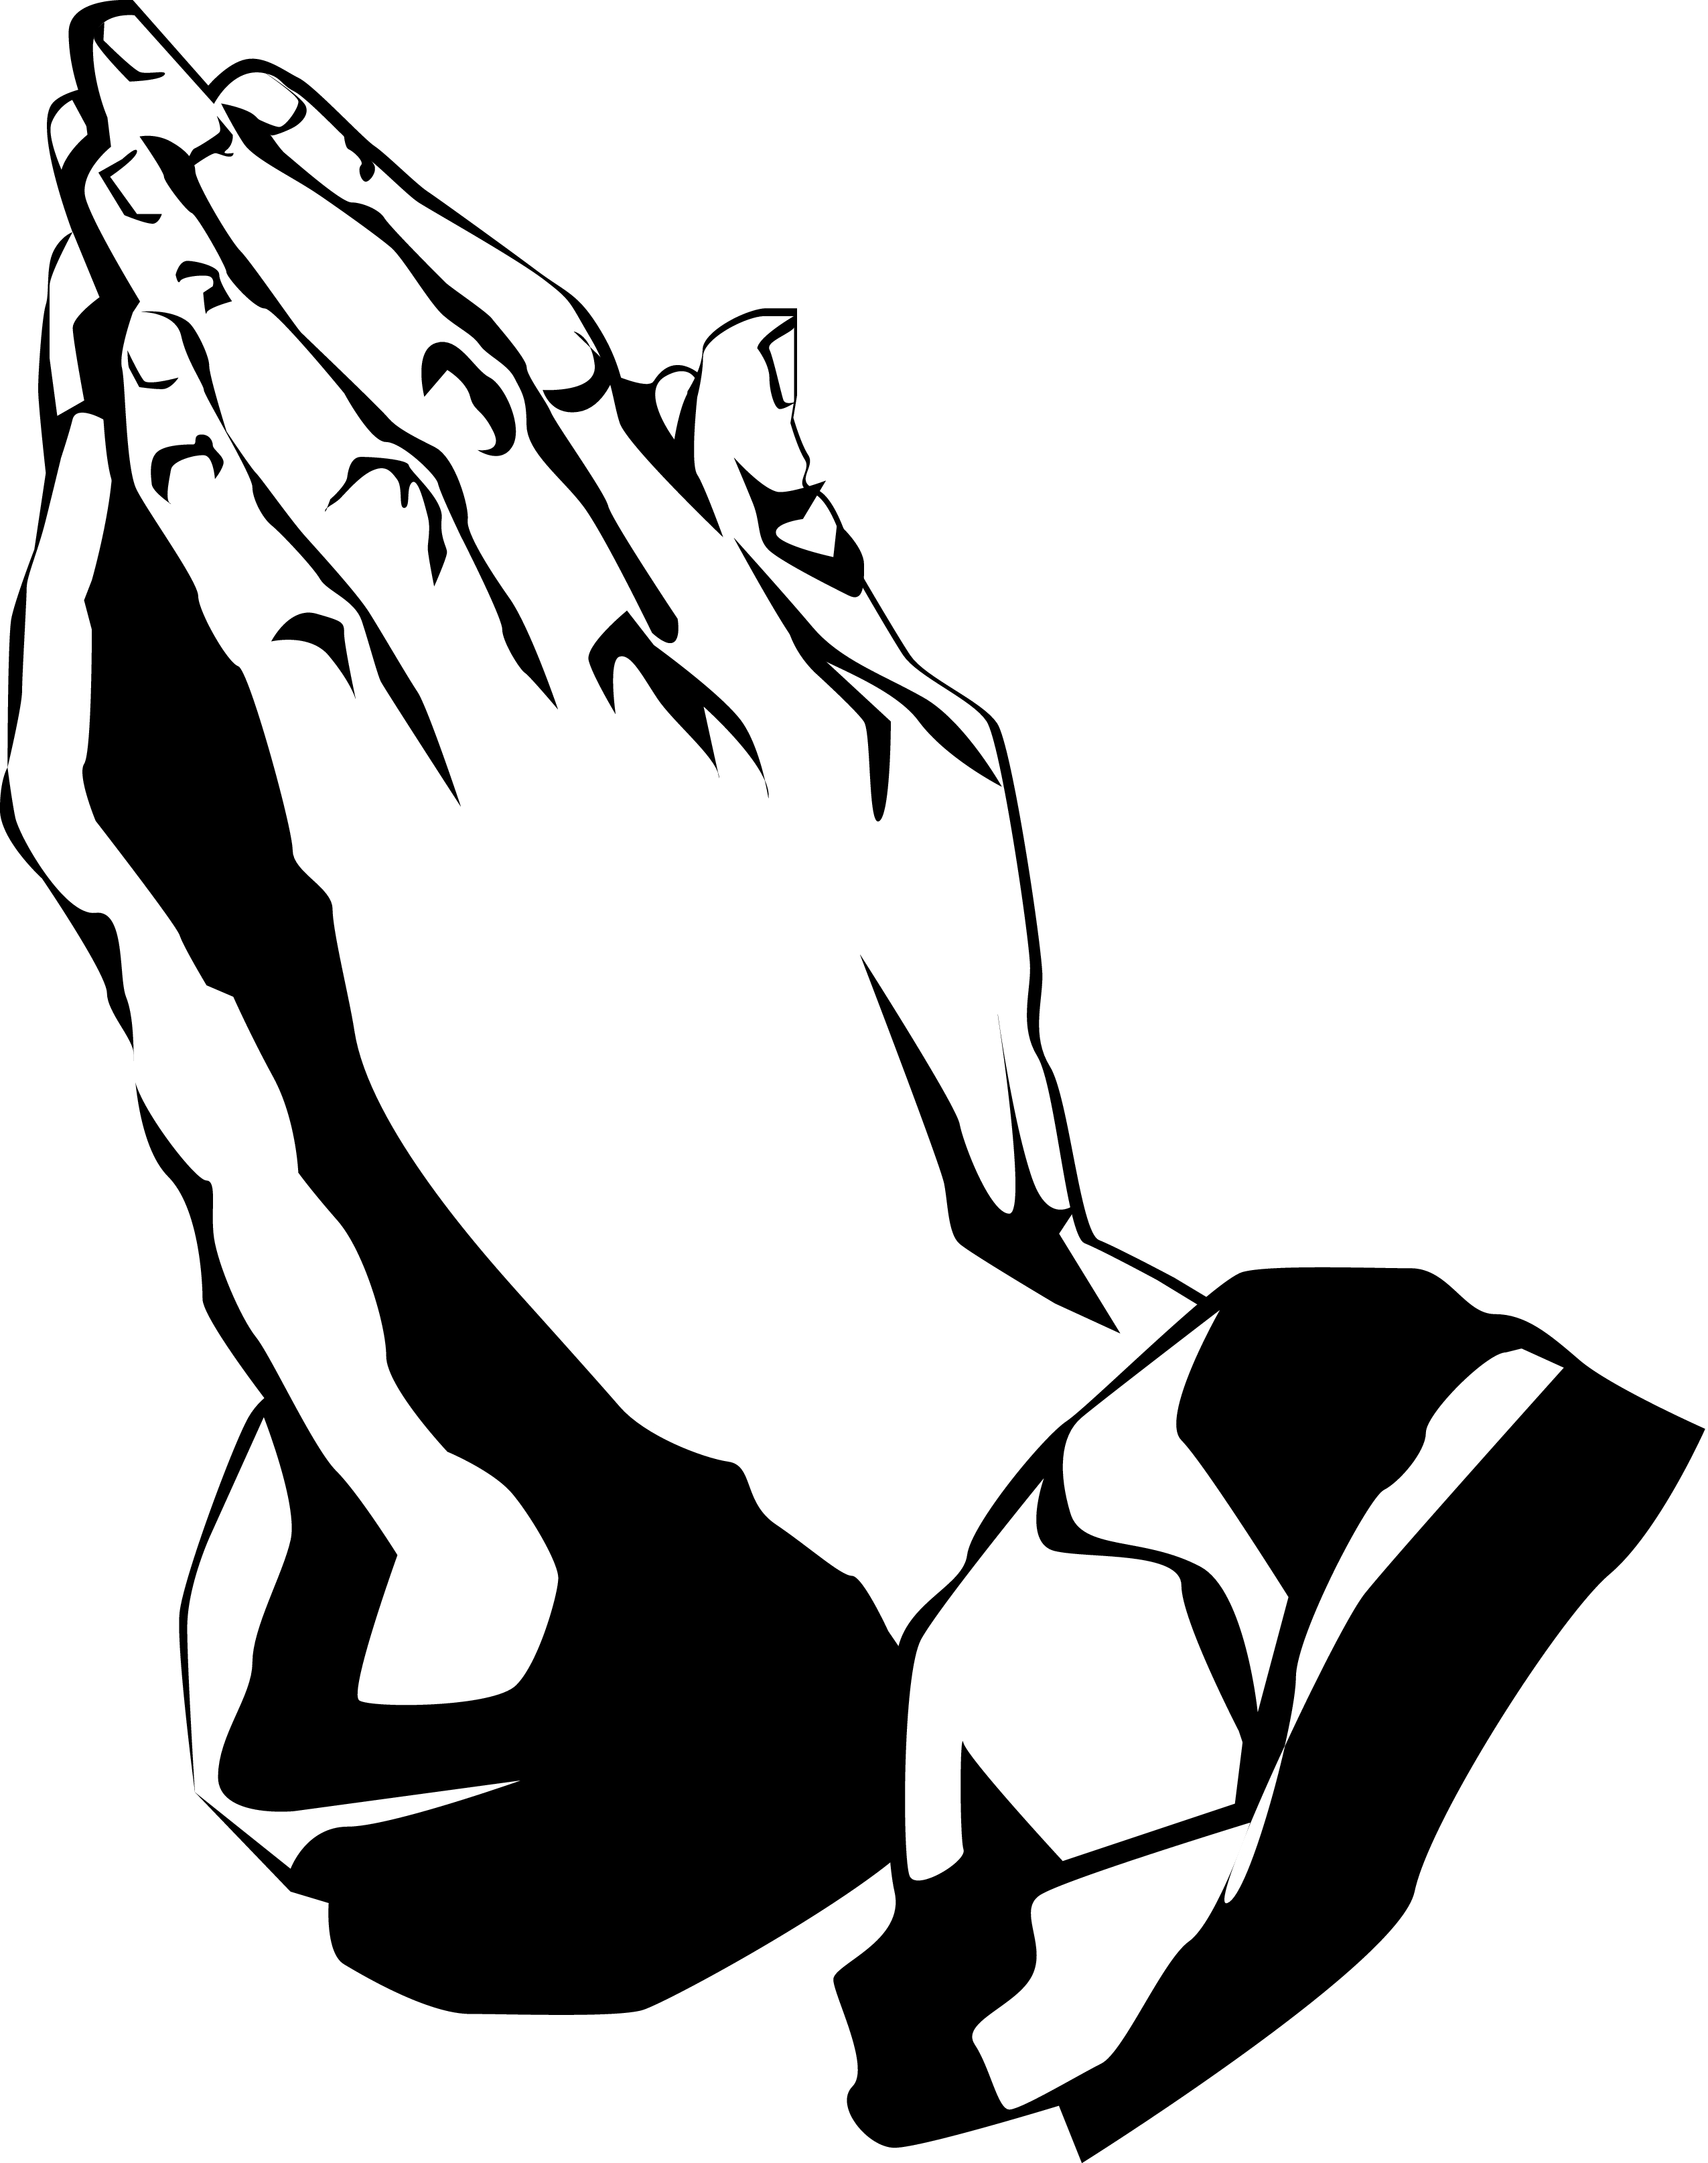 2550x3229 Praying Hands Silhouette Clipart